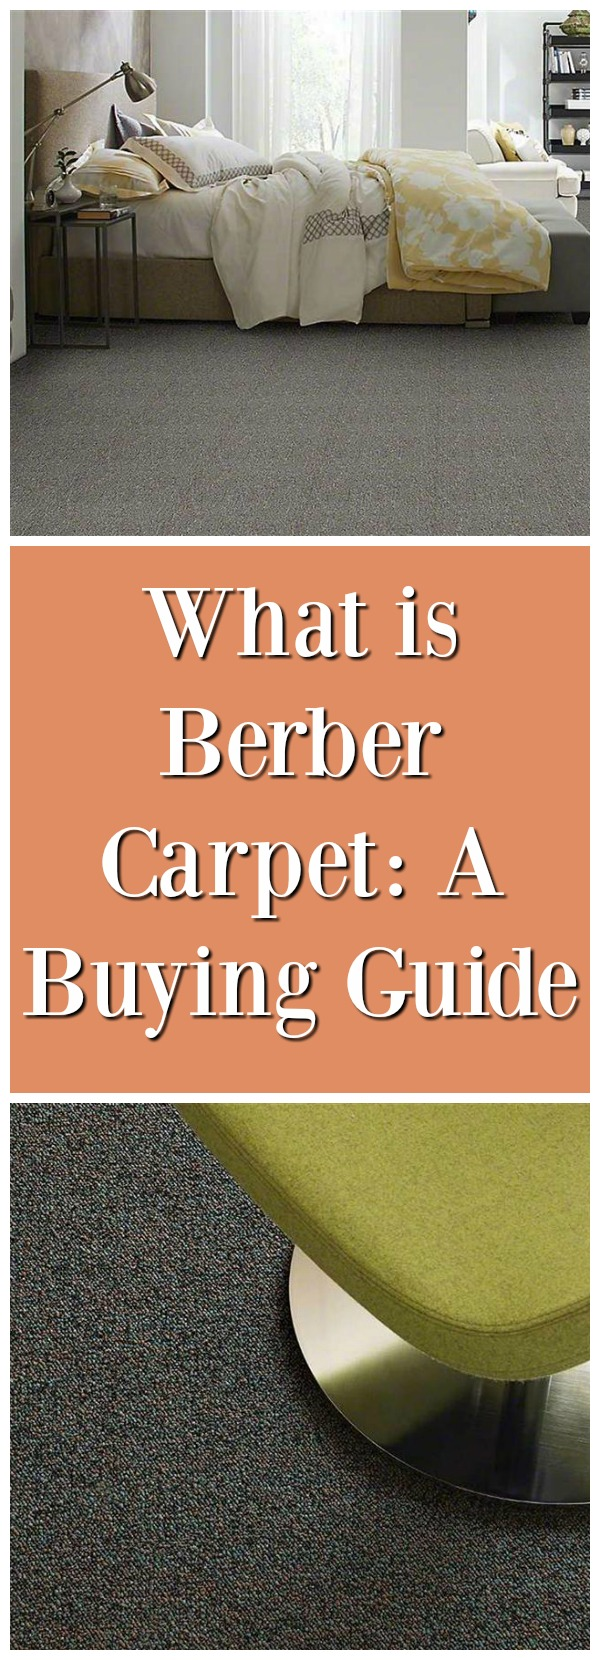 Berber carpet is a big mystery to many people.Let's demystify berber carpet and let you in on all the secrets surrounding this product. Let's get started!